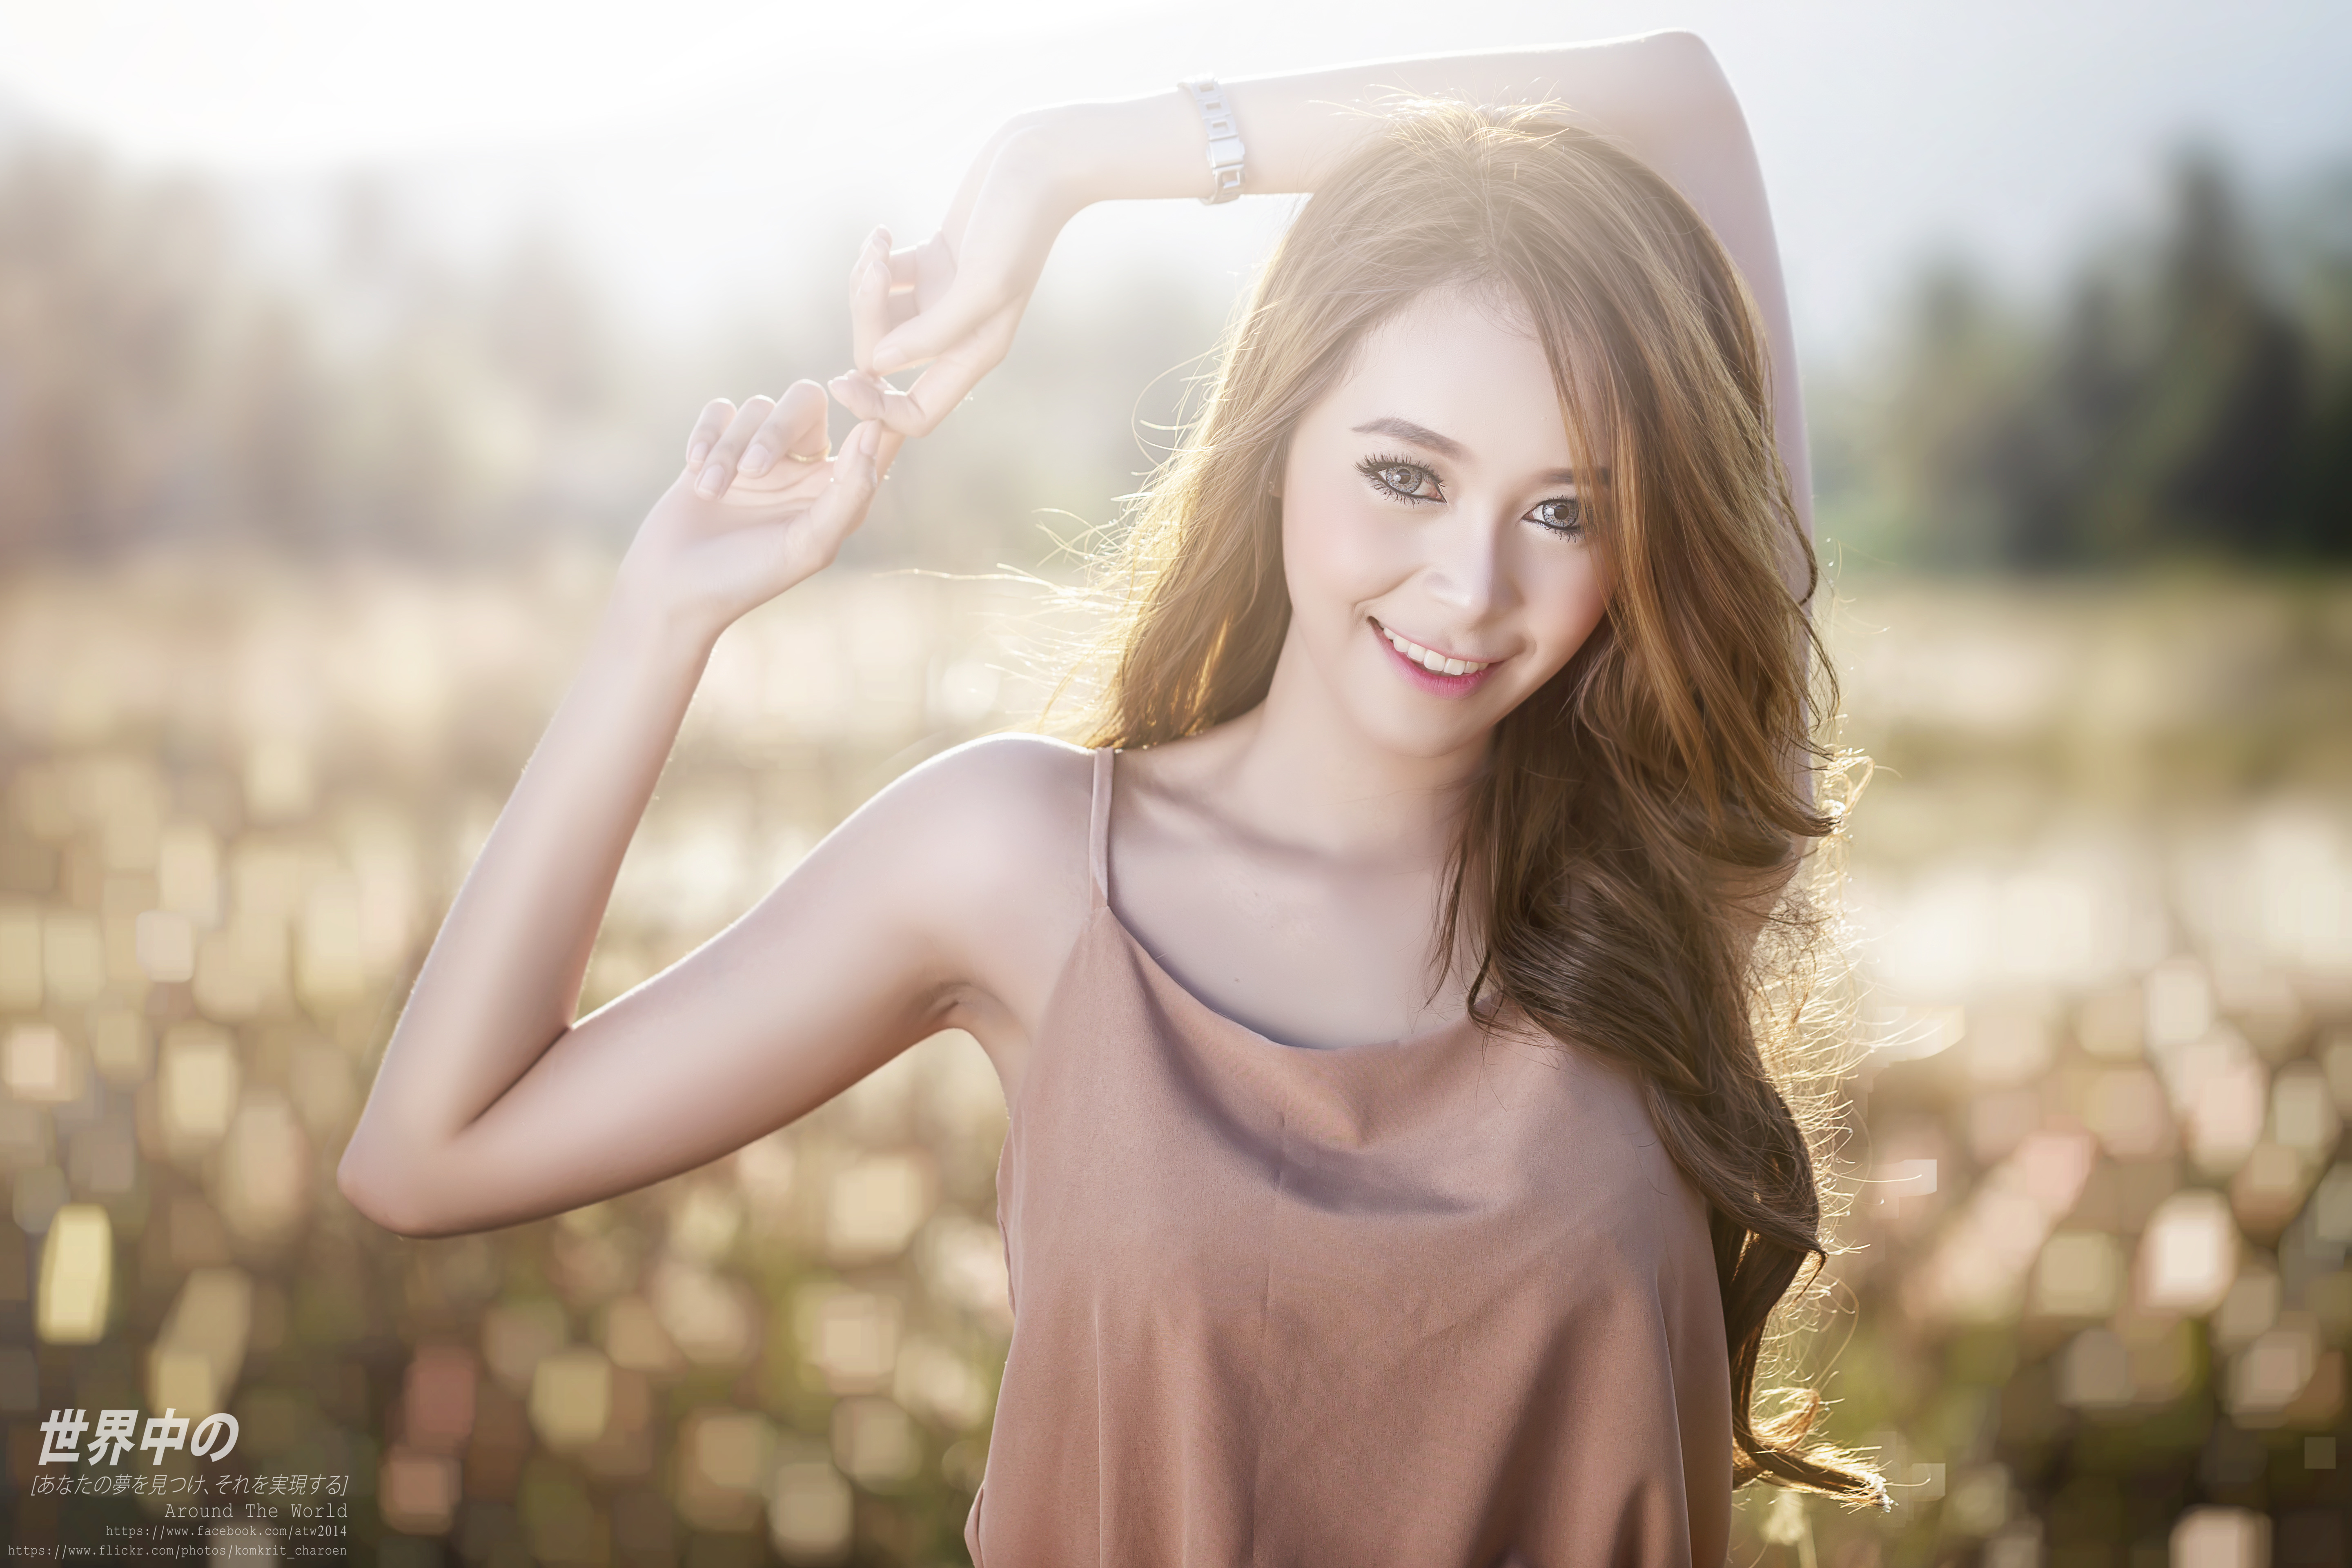 Desktop Wallpapers Smile Bokeh Girls Asiatic Hands Glance 5760x3840 blurred background female young woman Asian Staring